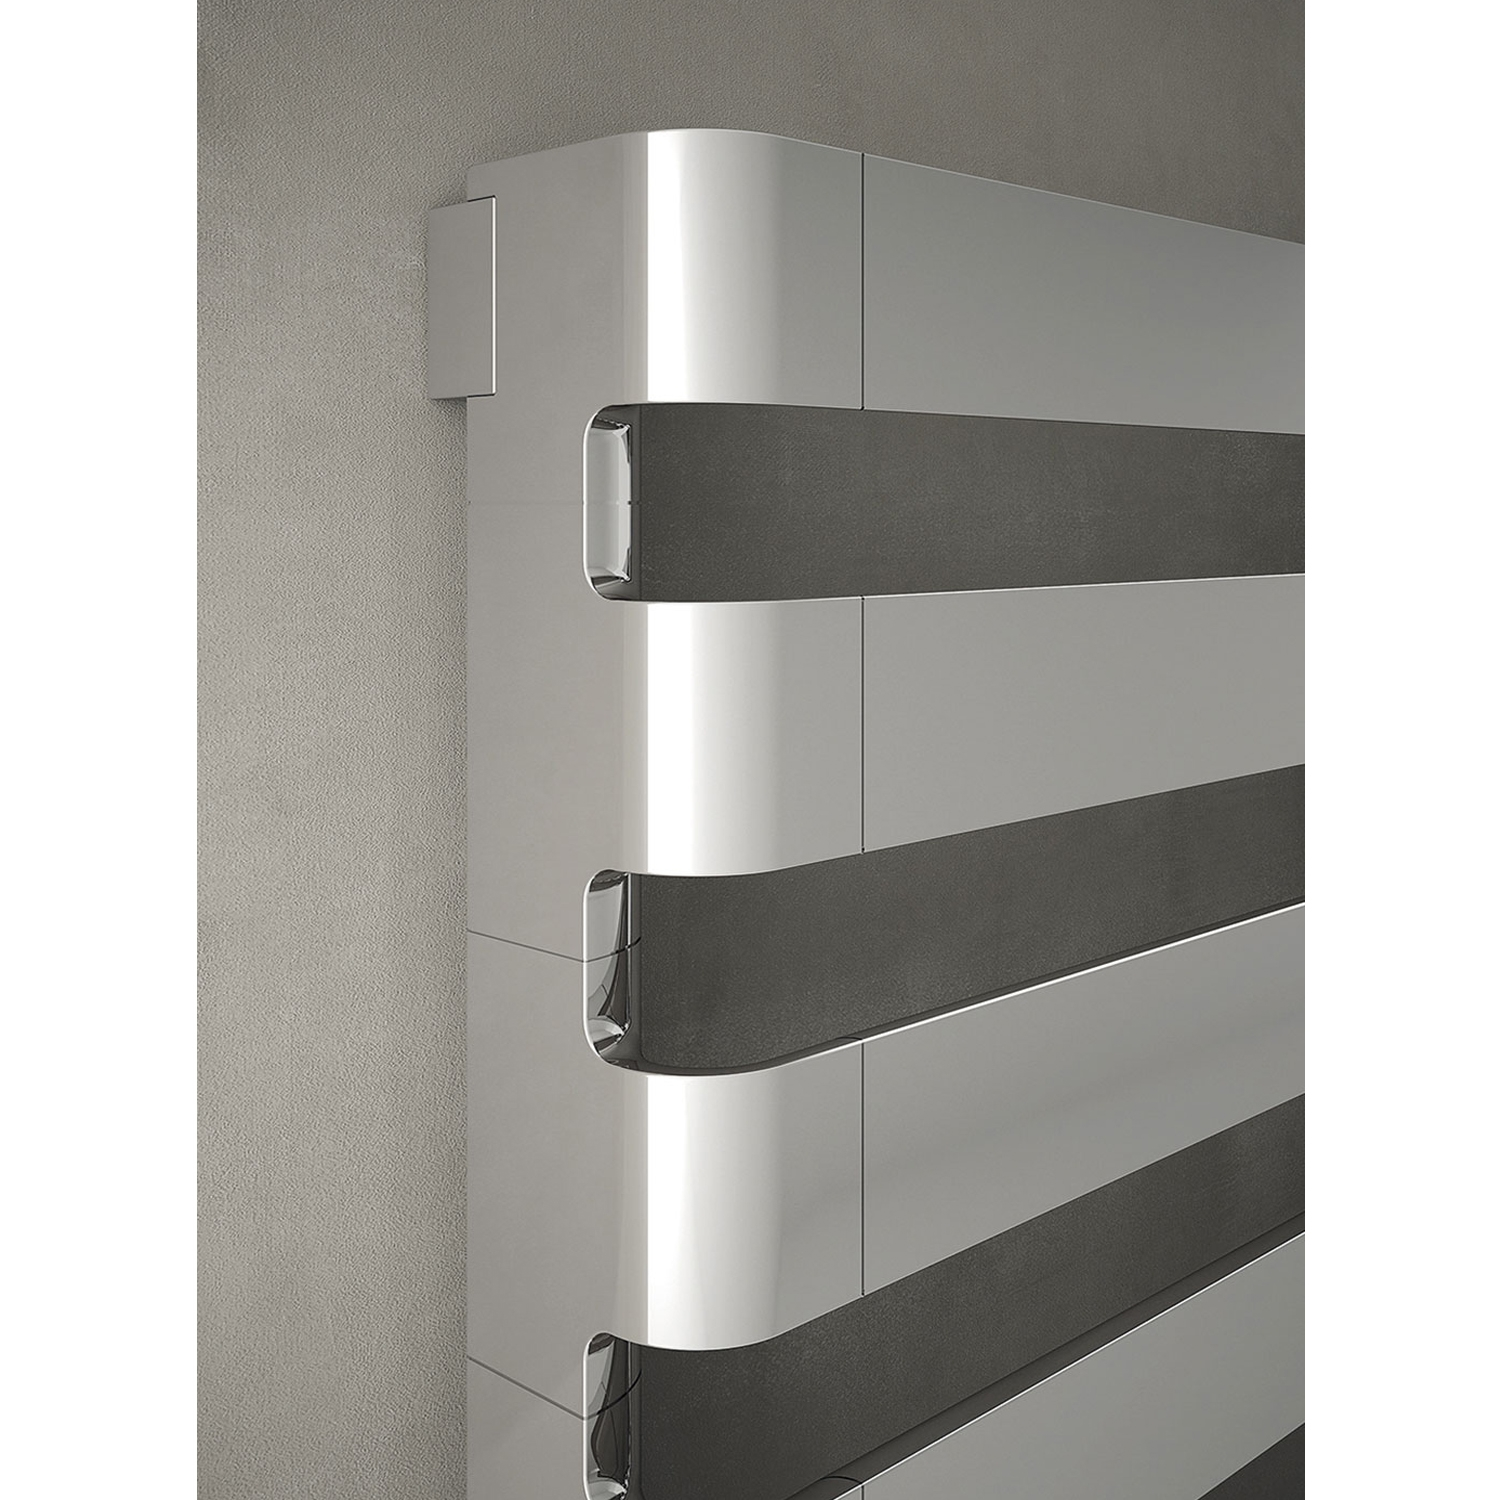 TRC BDO Step Heated Towel Rail 430mm H x 1800mm W - Chrome